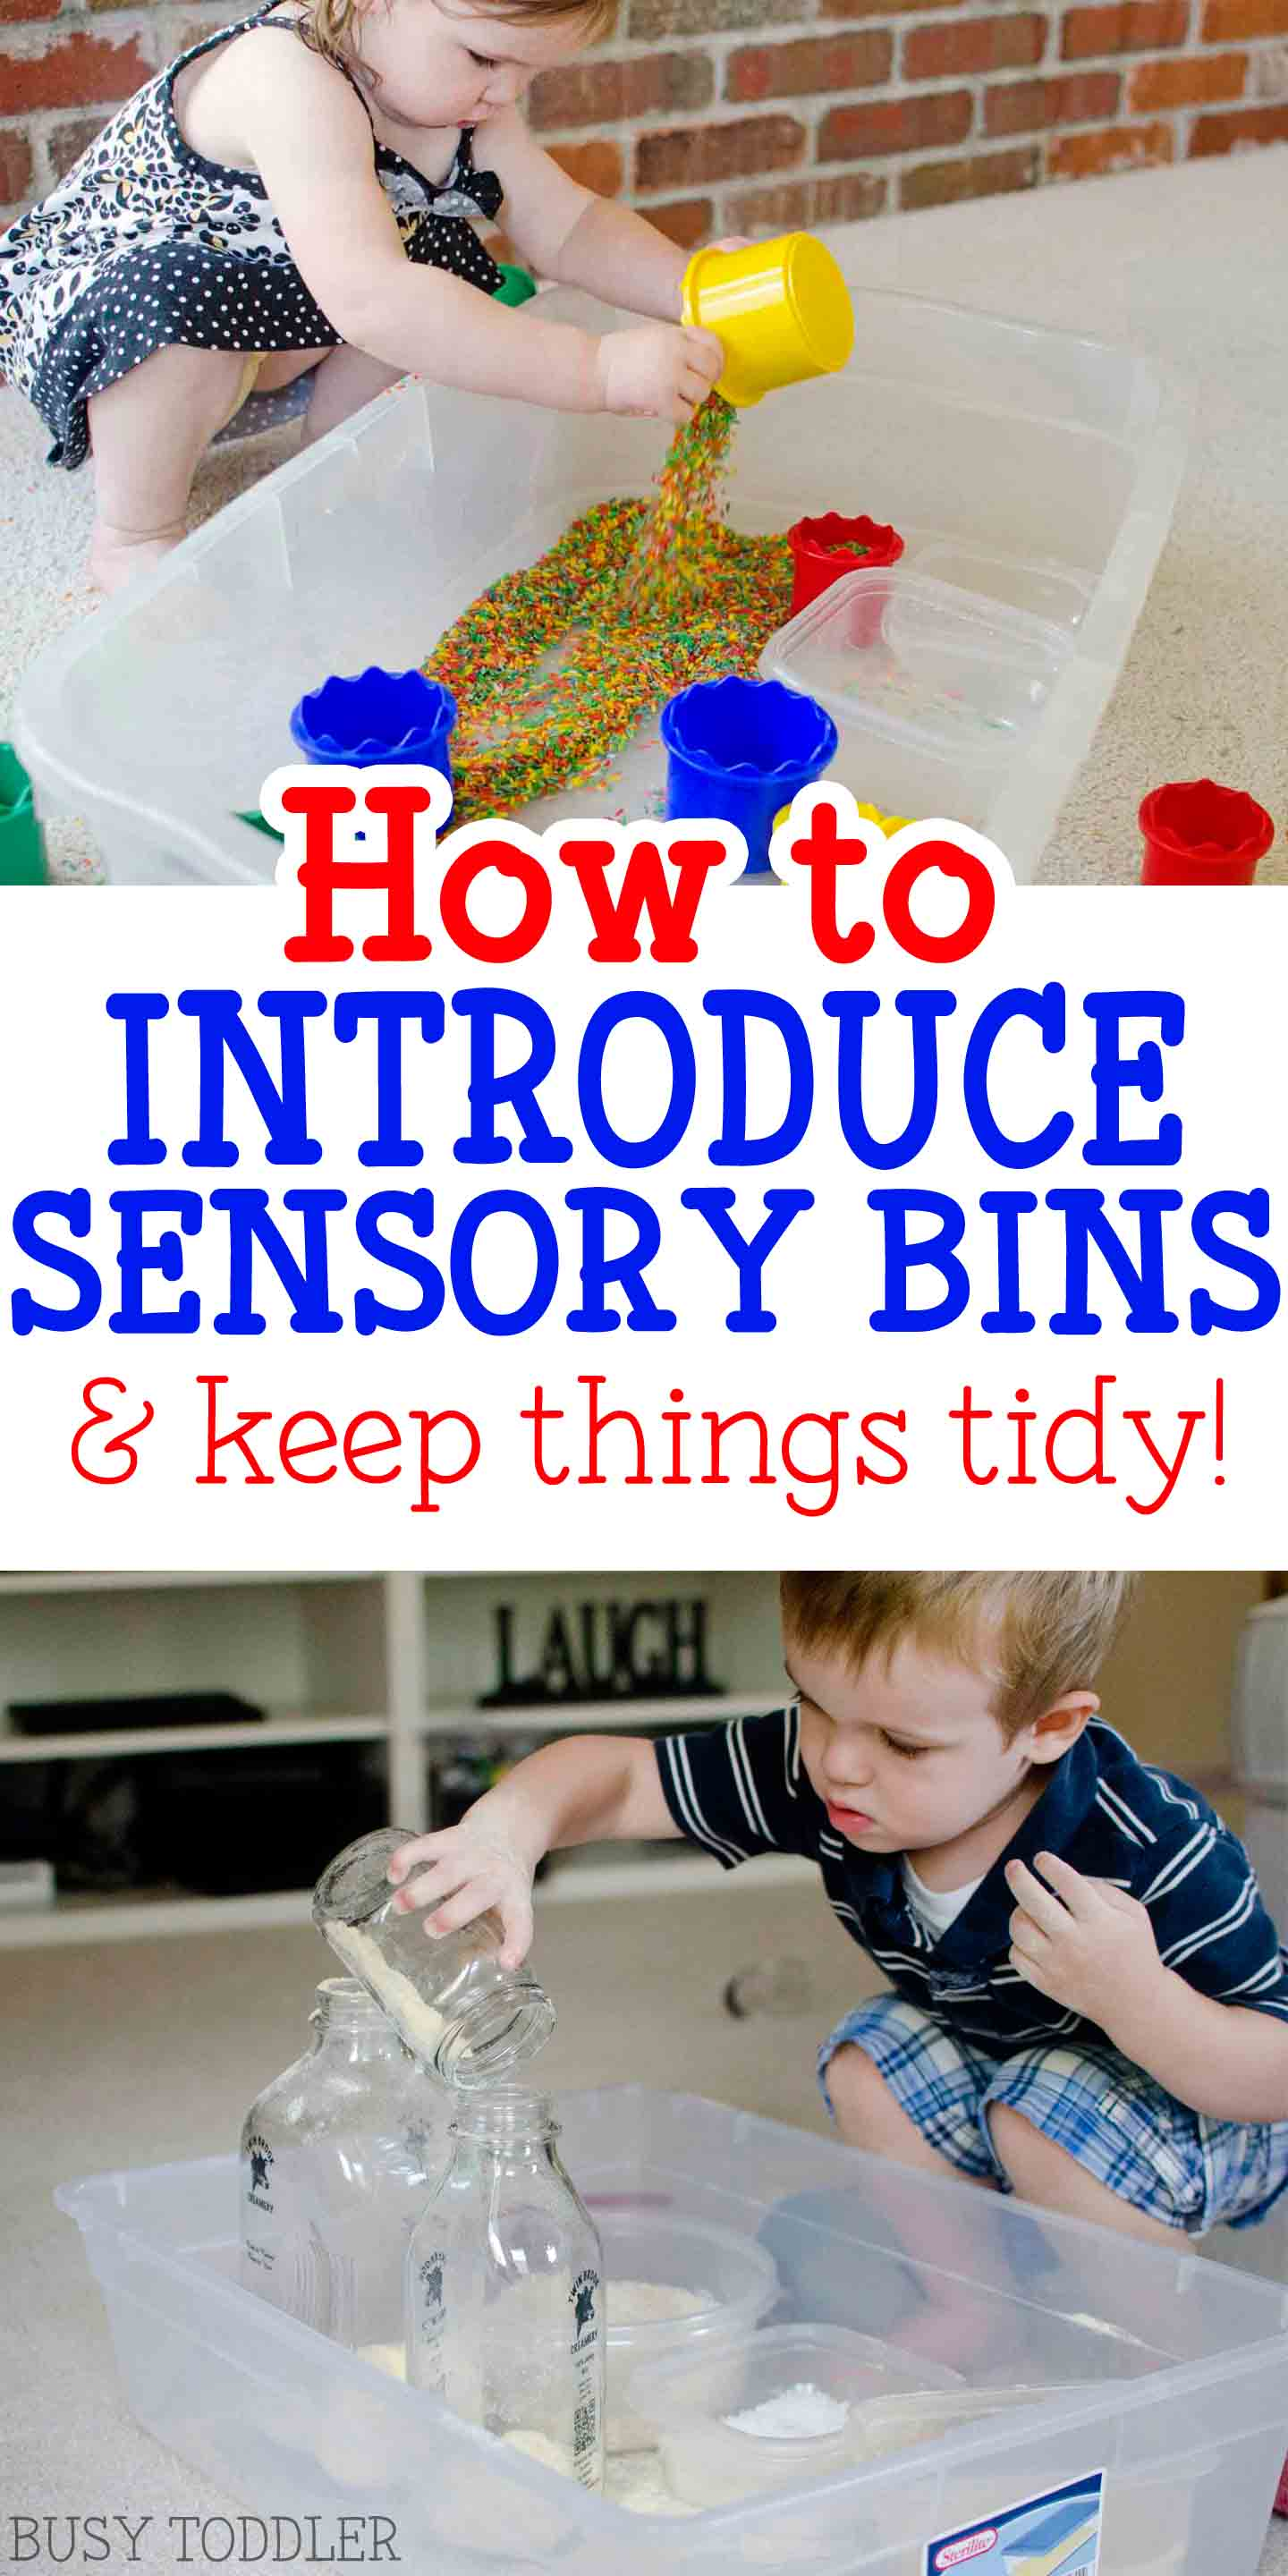 INTRODUCING SENSORY BINS TO TODDLERS: Ever wondered where to start with sensory bins? This article has so many helpful tips for teaching toddlers how to play with sensory bins.